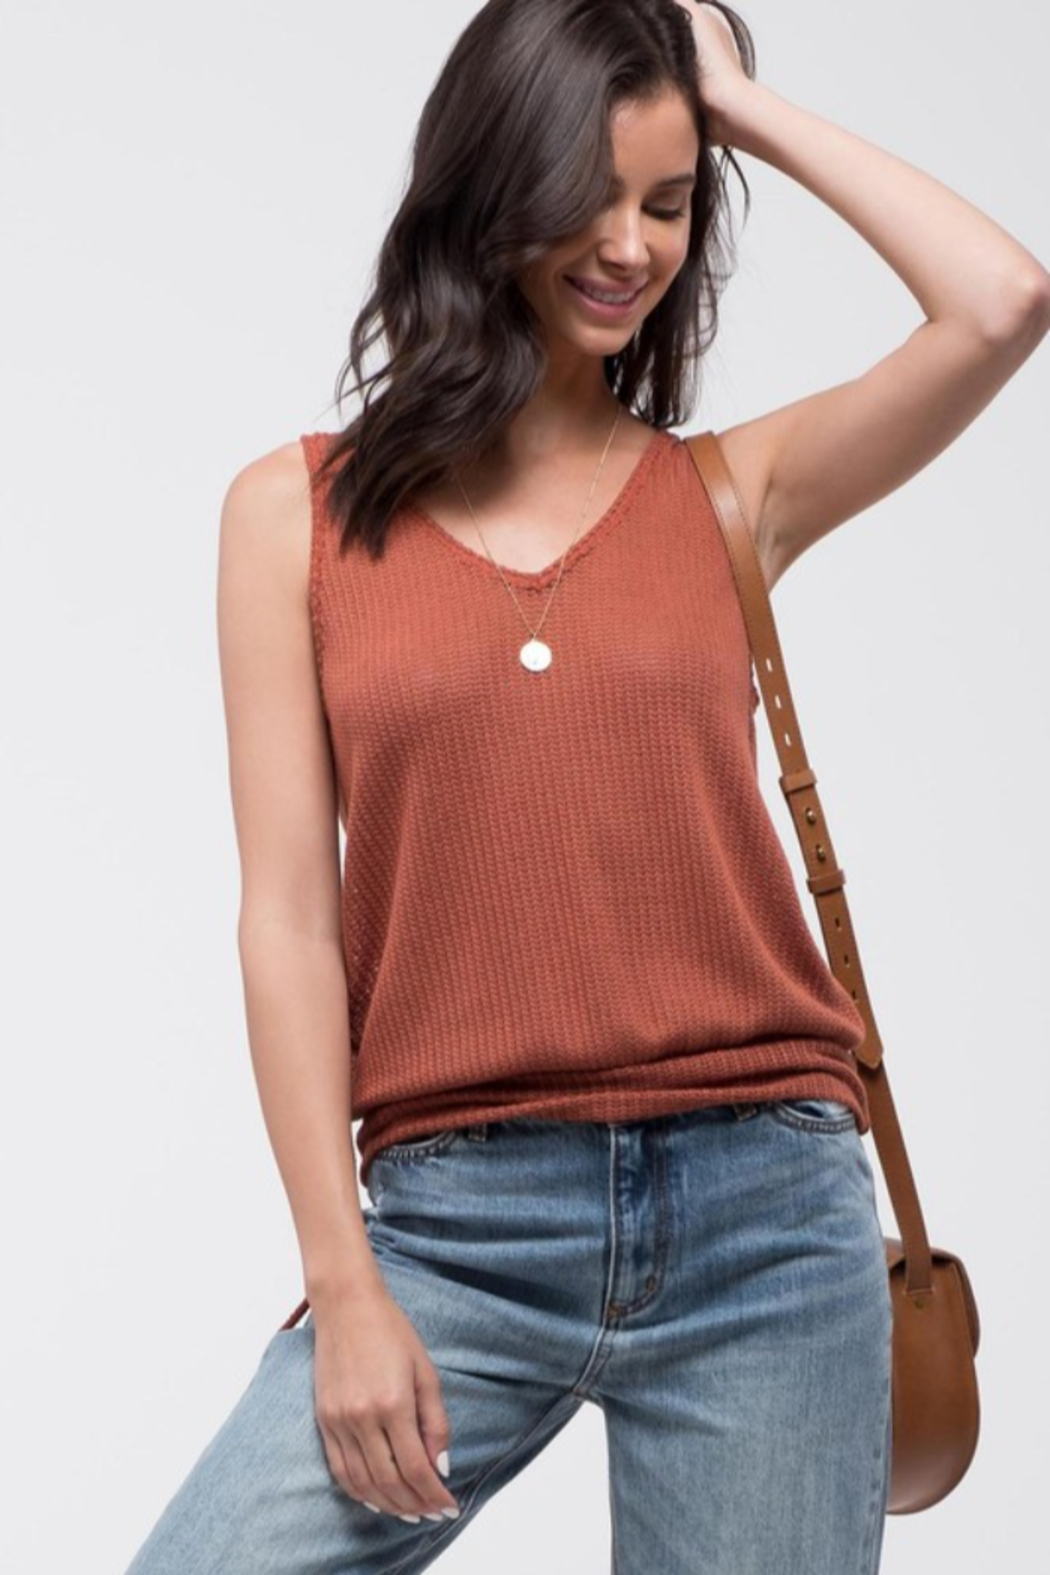 blu Pepper  Knit Sweater Tank with Open Back - Front Full Image